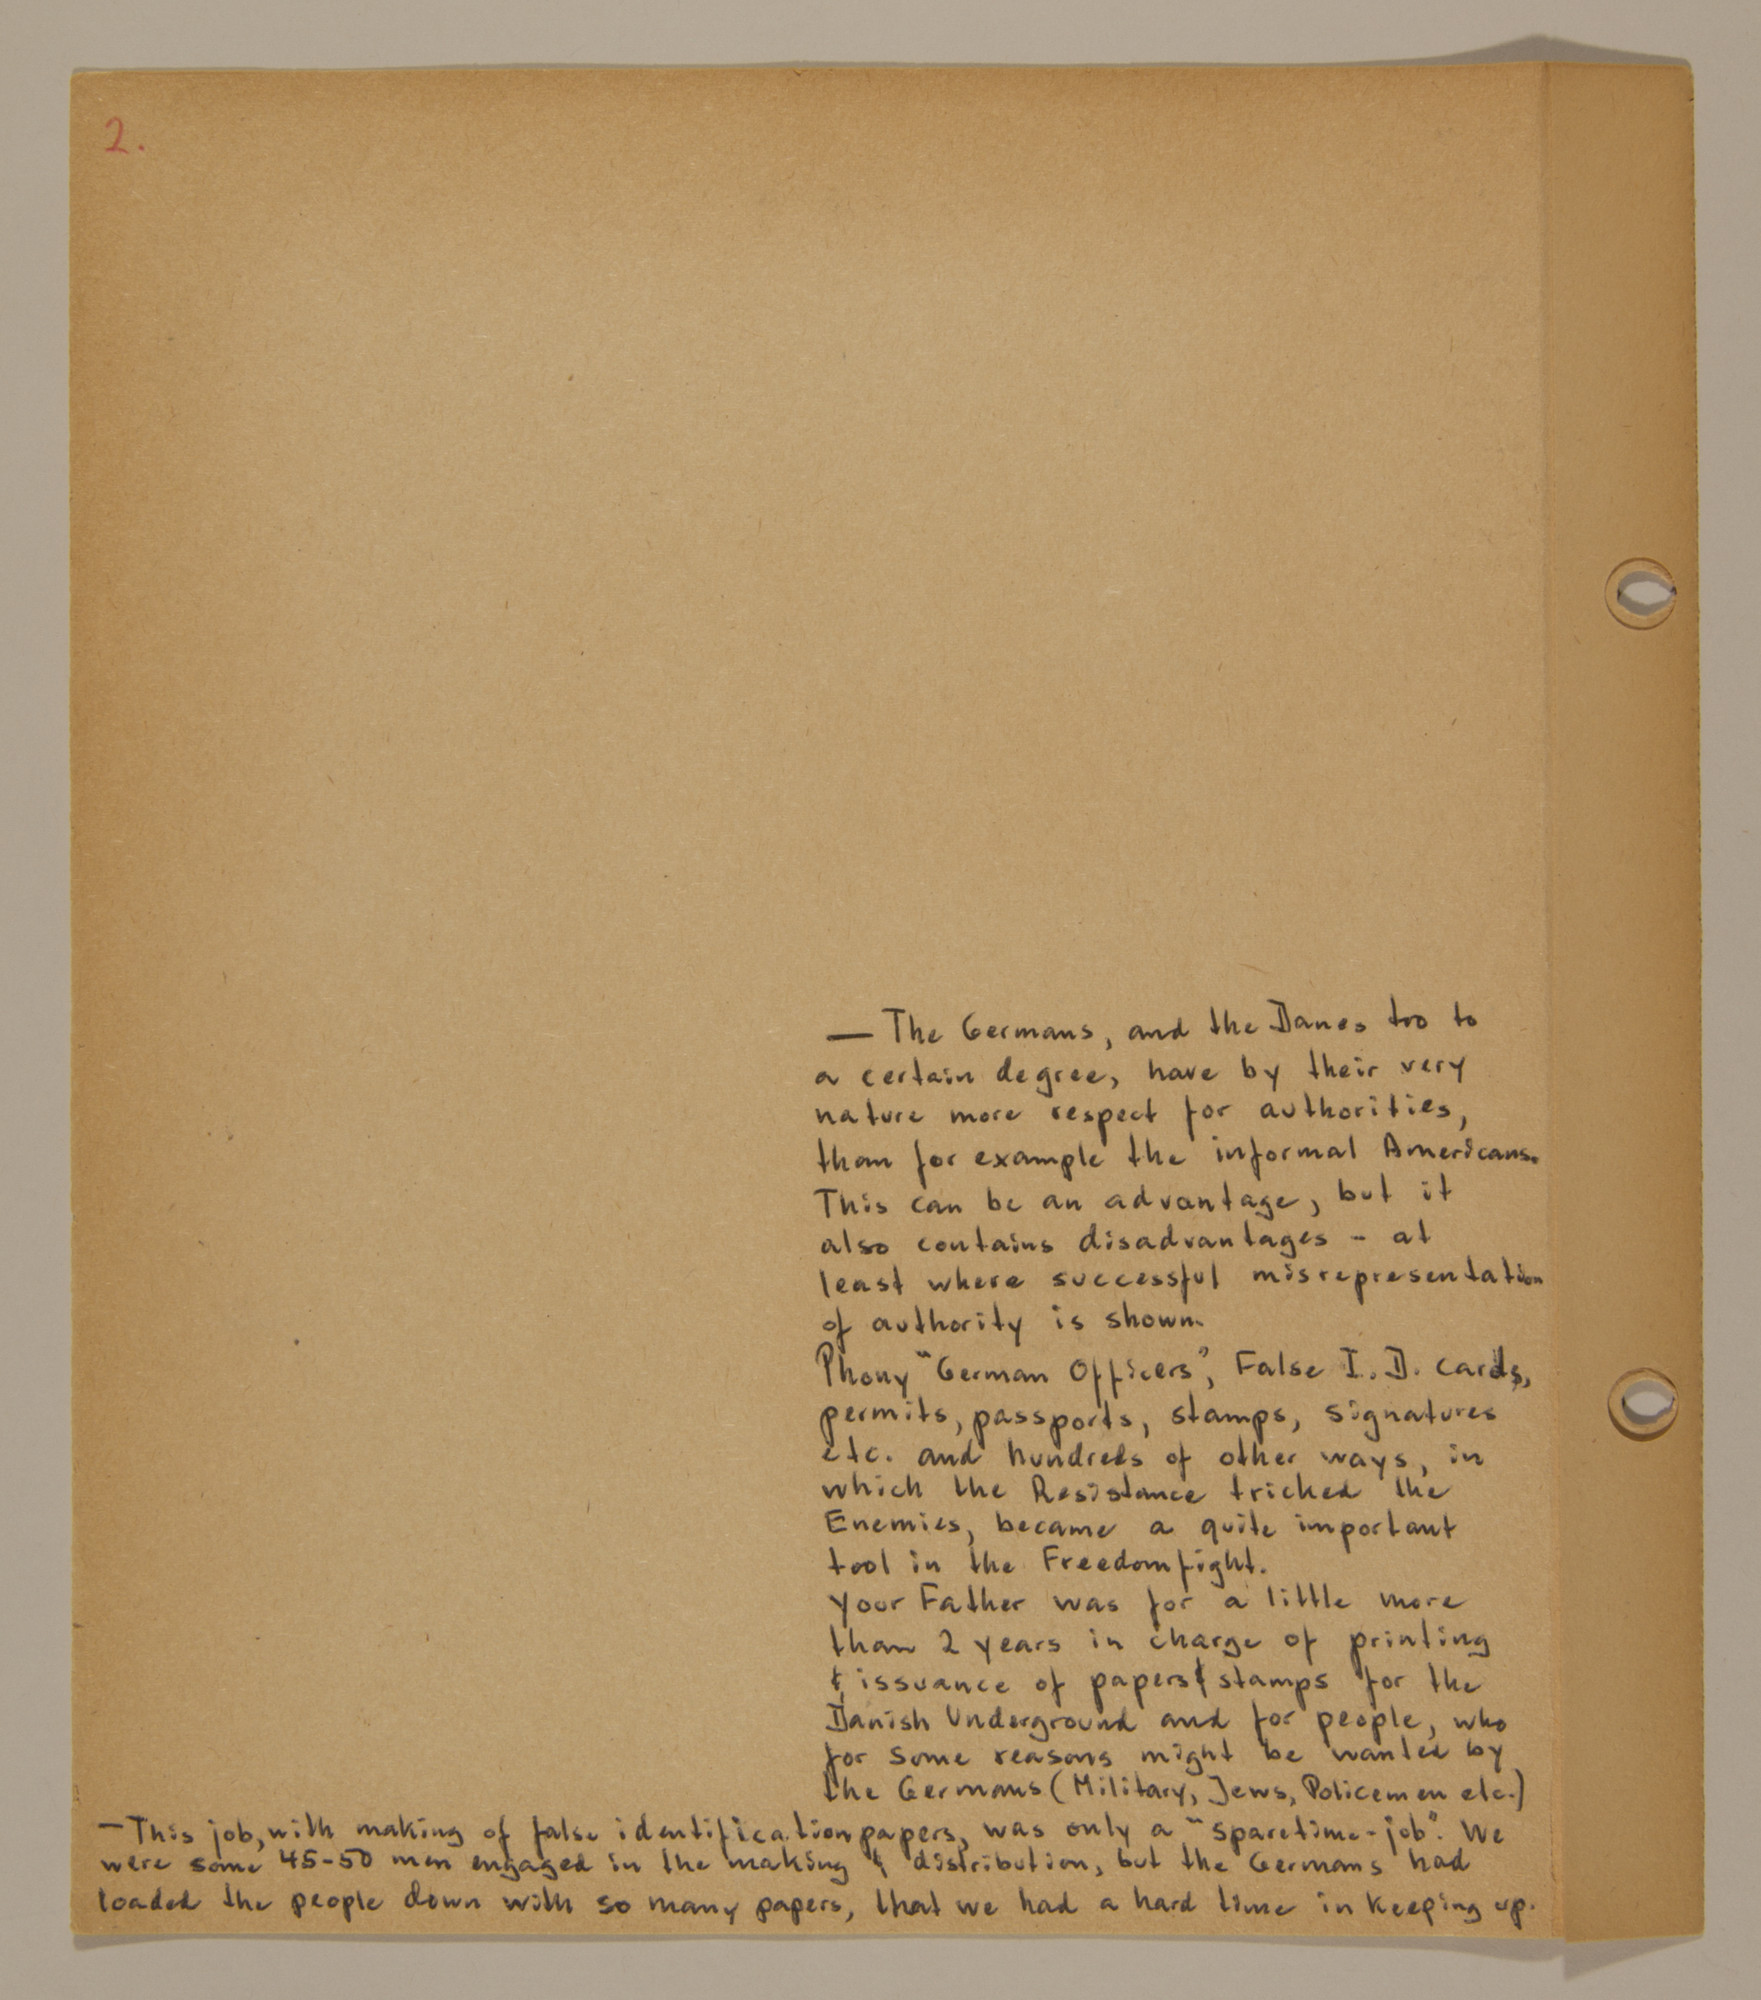 Page from volume three of a set of scrapbooks compiled by Bjorn Sibbern, a Danish policeman and resistance member, documenting the German occupation of Denmark.  This page has text about the creation of false identification documents.